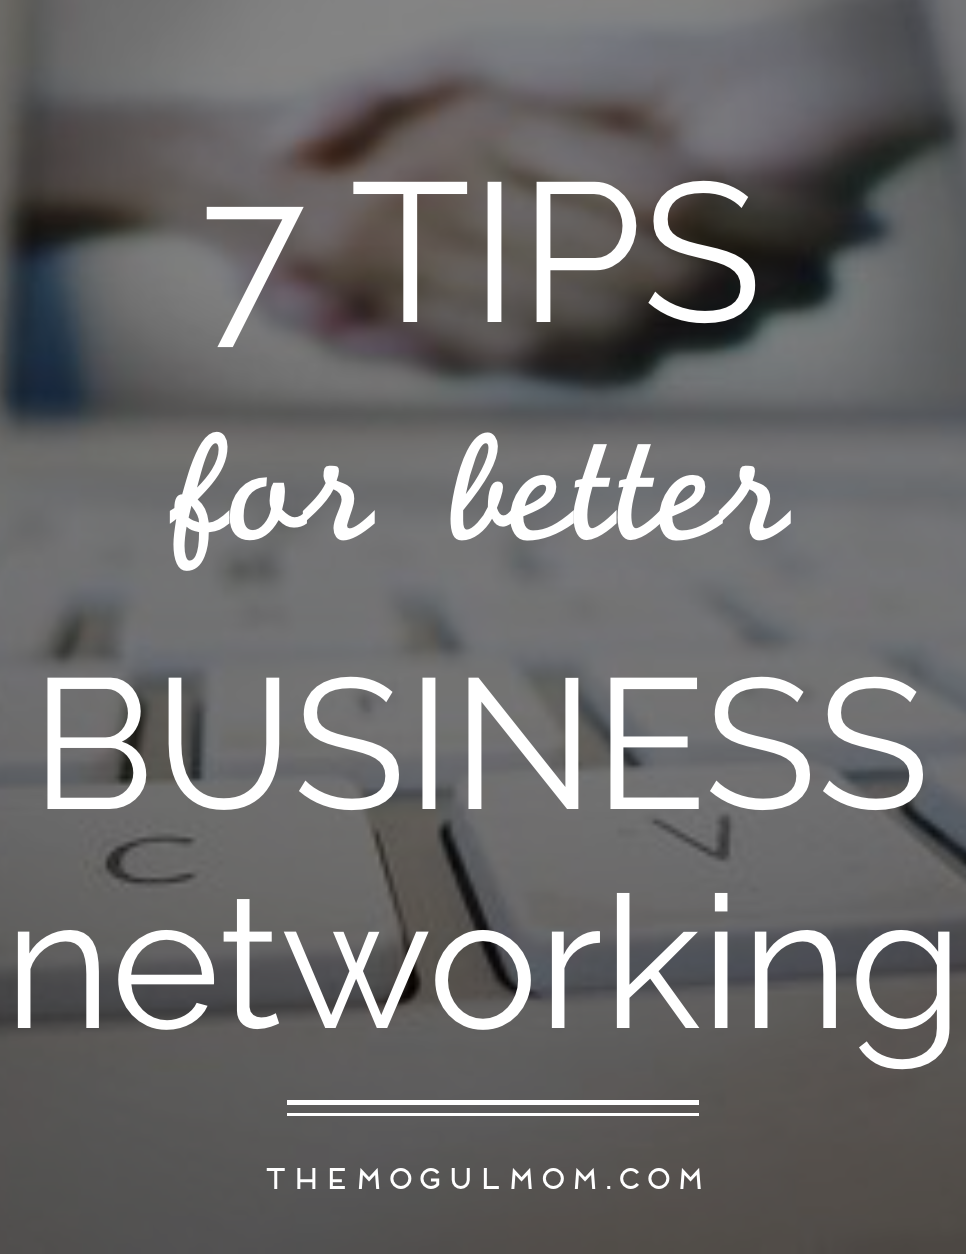 7 Tips For Better Business Networking